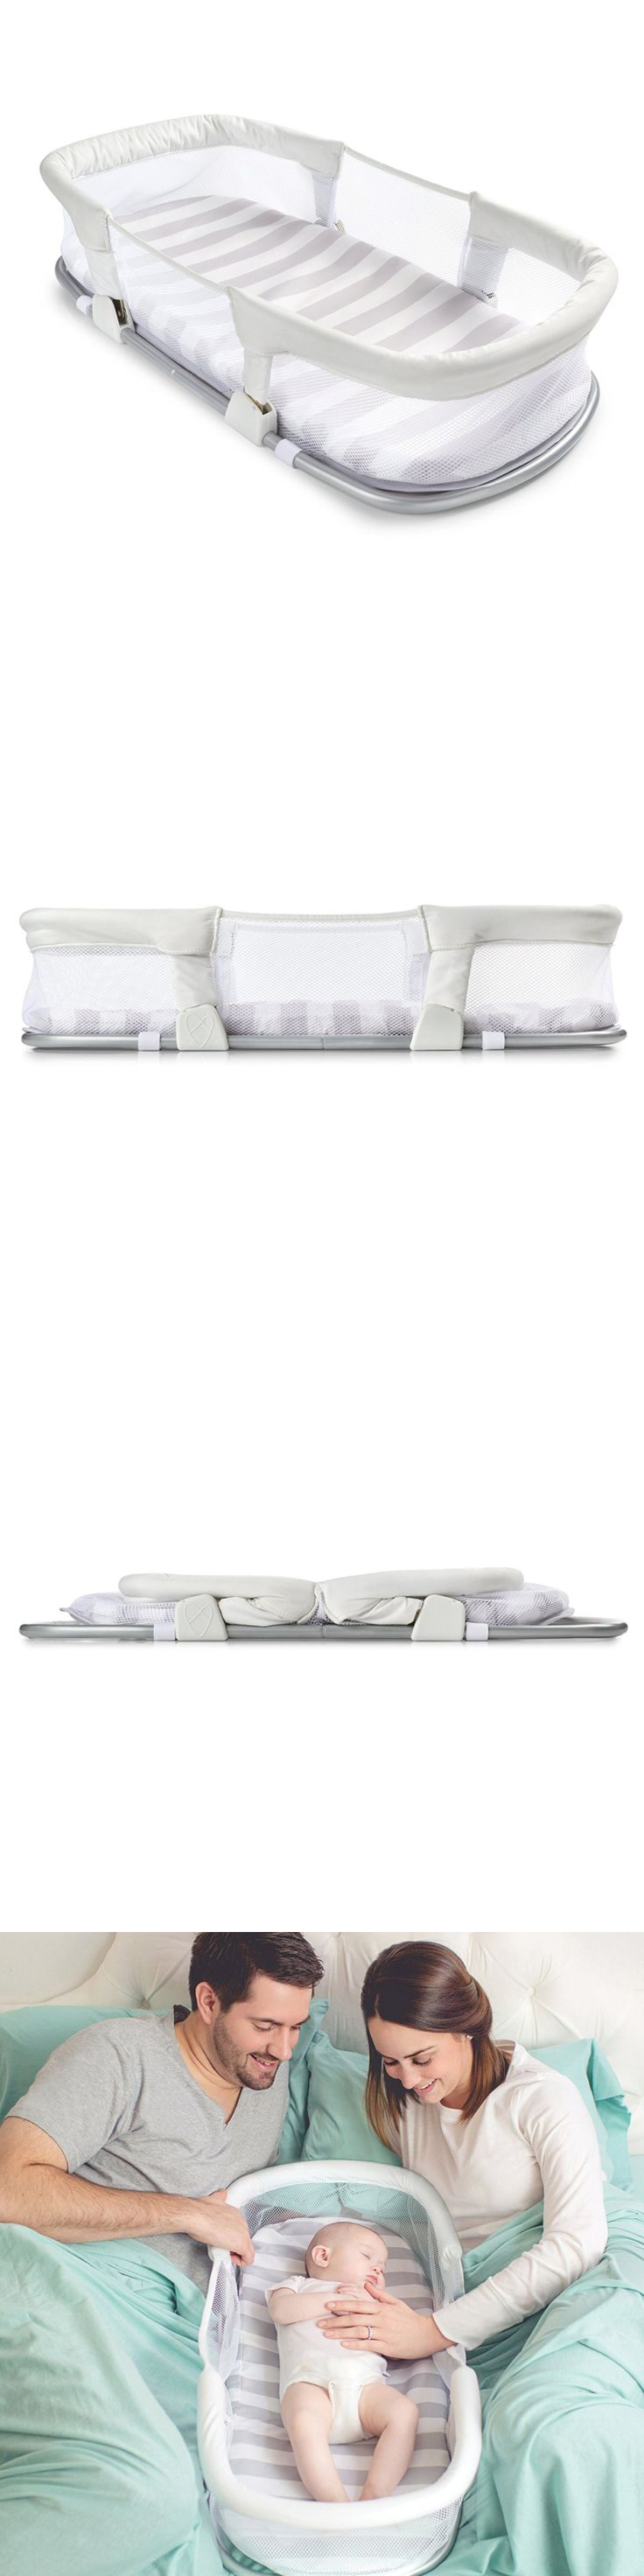 Baby Co-Sleepers 121152: Portable Baby Bassinet Newborn Infant Side Sleeping Mattress Bed Cradle Crib New -> BUY IT NOW ONLY: $42.67 on eBay!